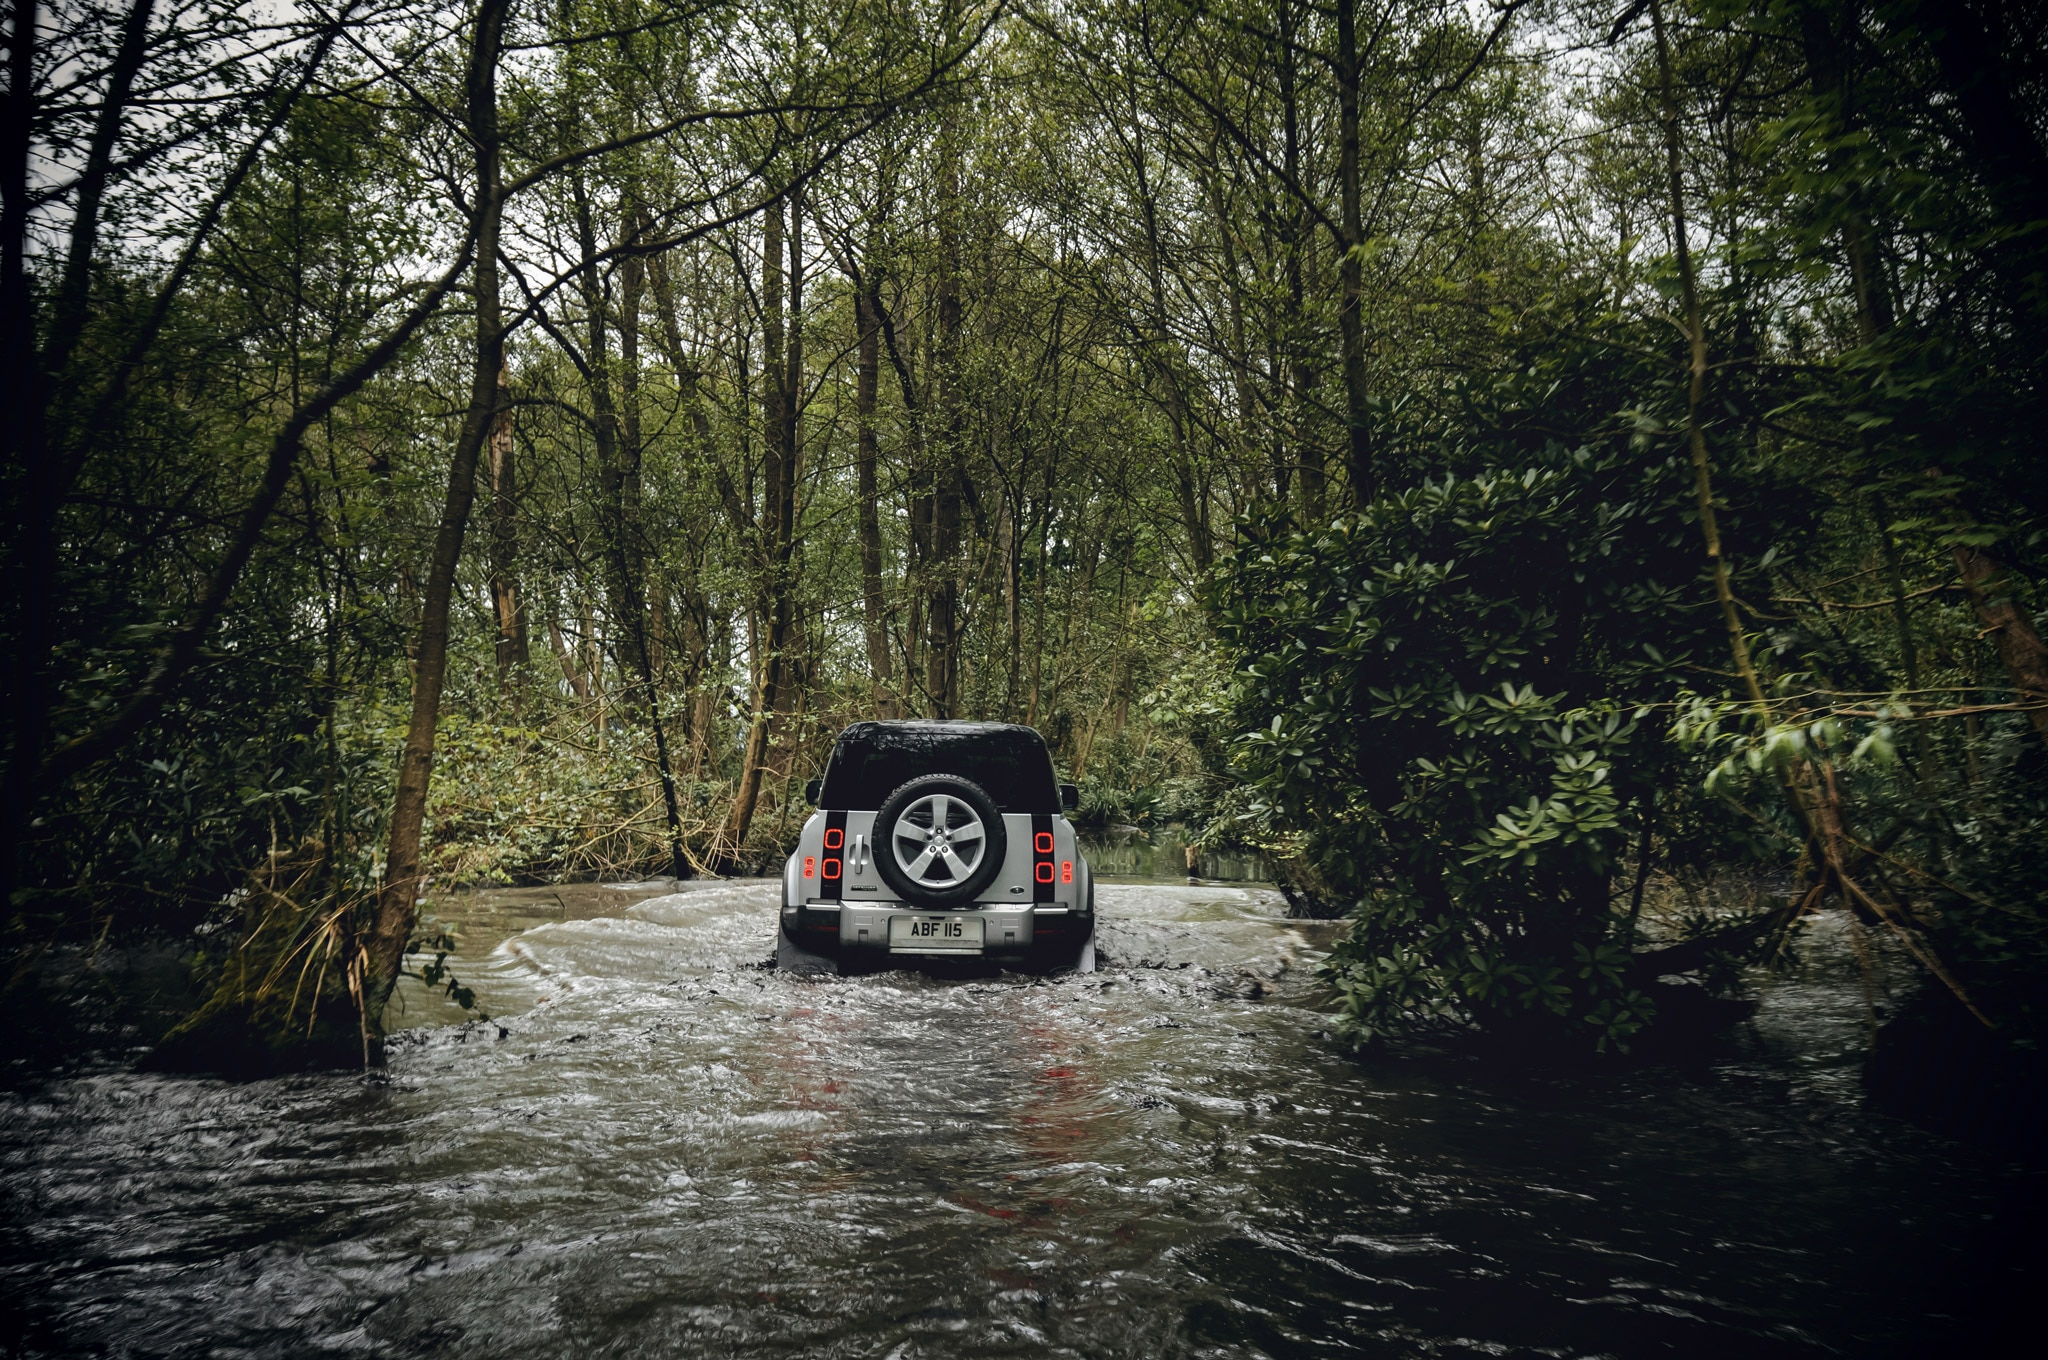 2020 land rover defender 110 off road mud bog 02